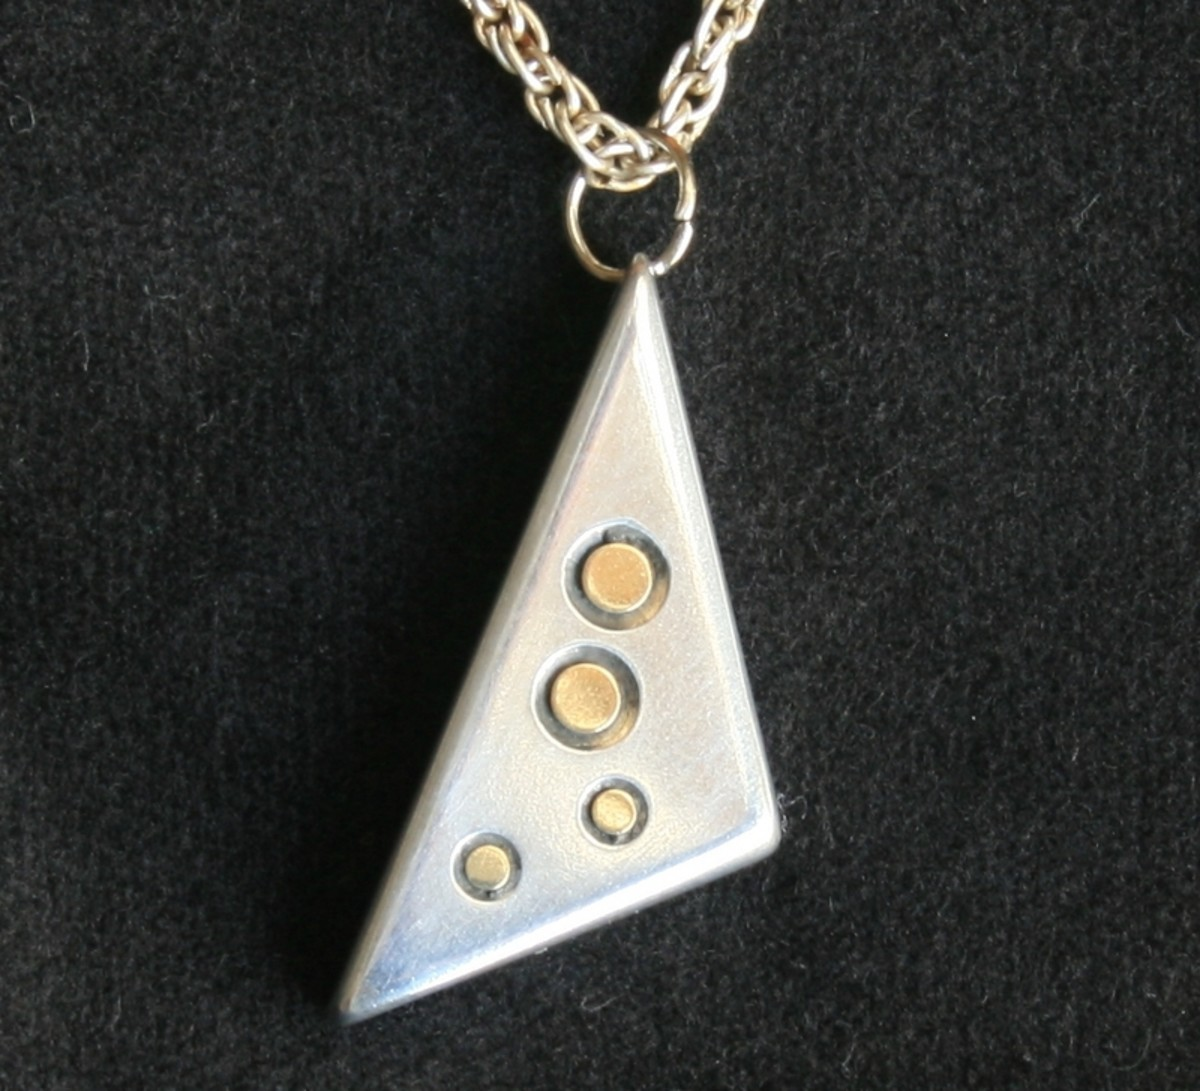 Aluminium and brass pendant